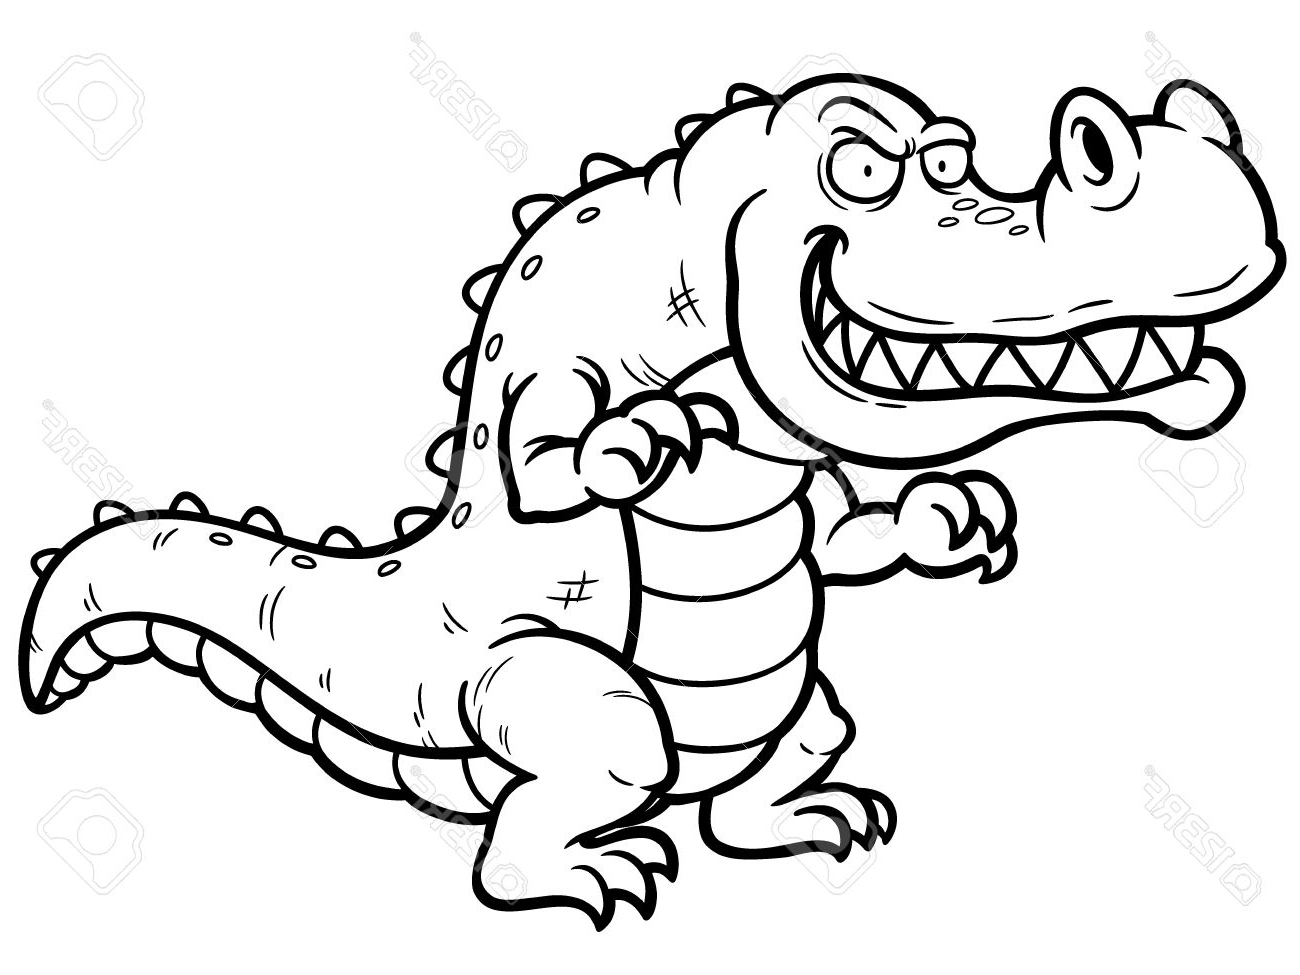 1300x975 Crocodile Cartoon Drawing How To Draw A Crocodile Cartoon And